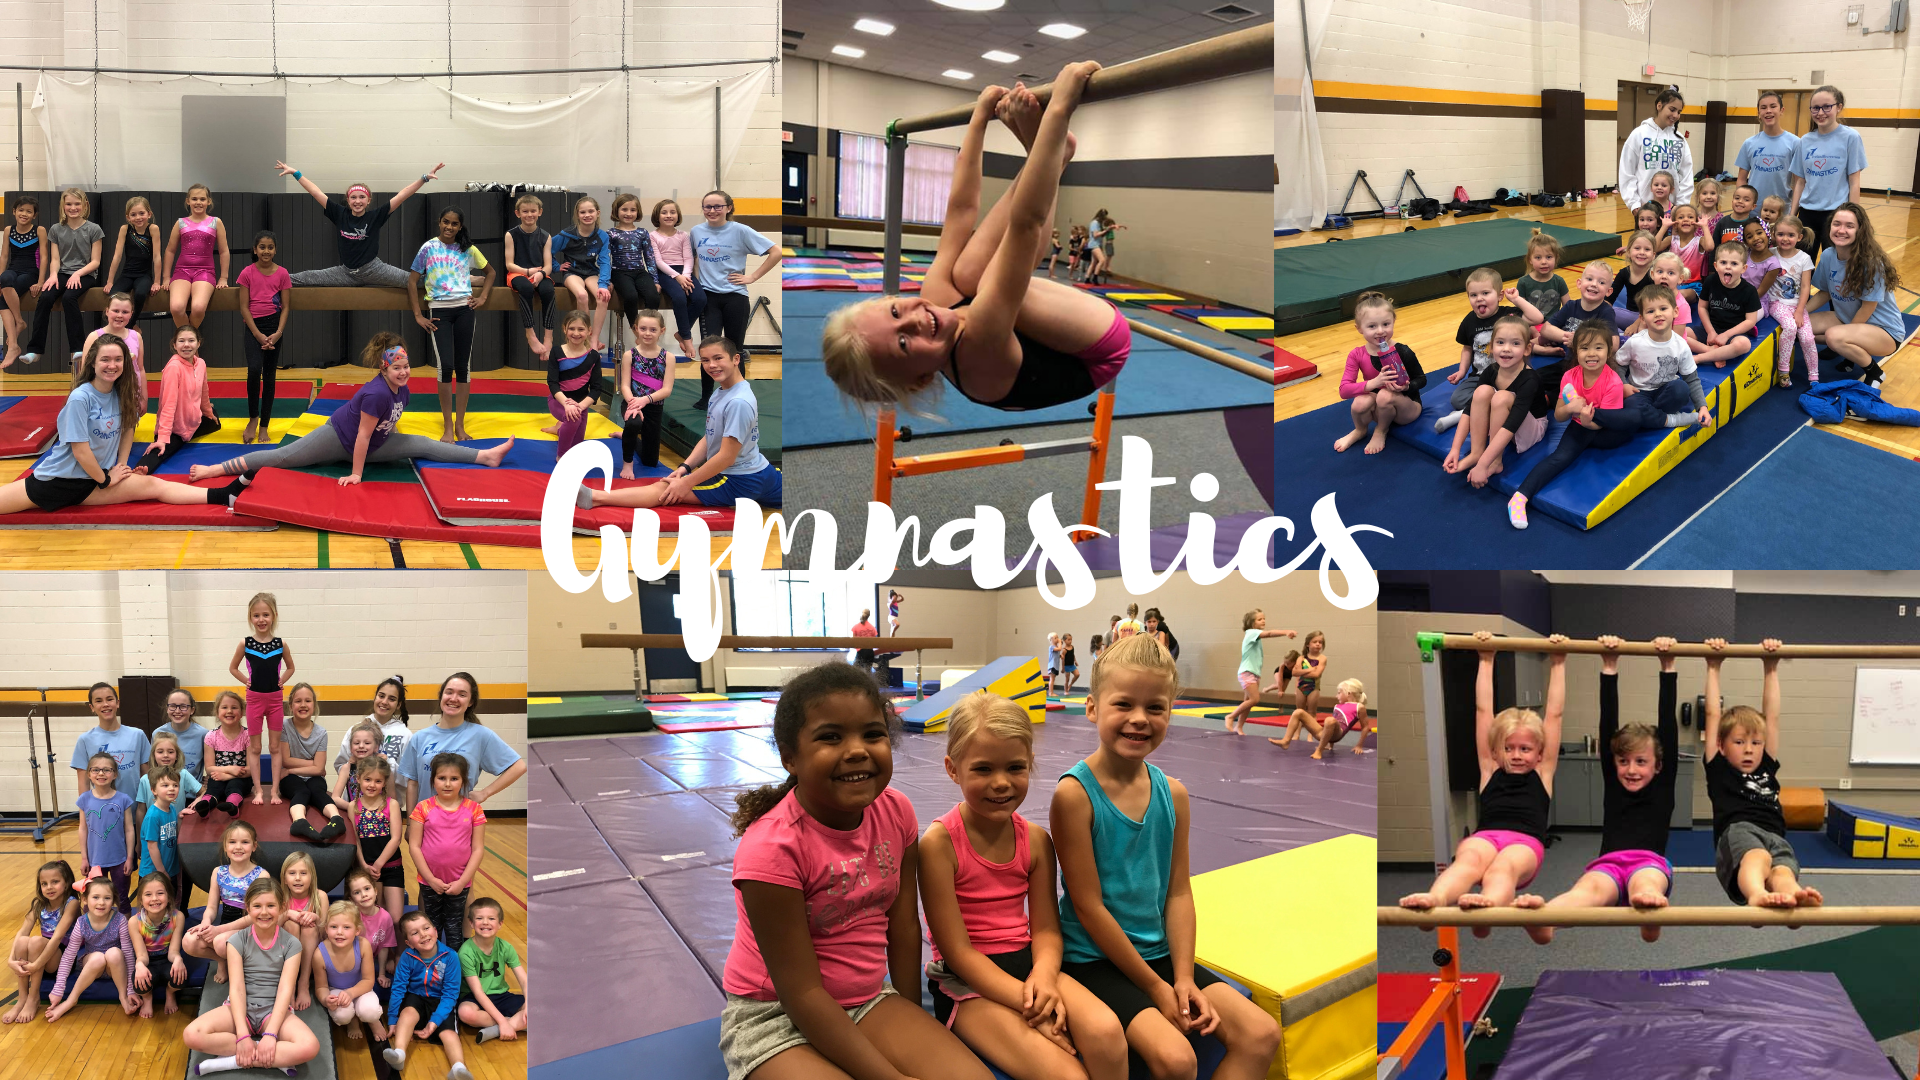 Youth group gymnastics pictures